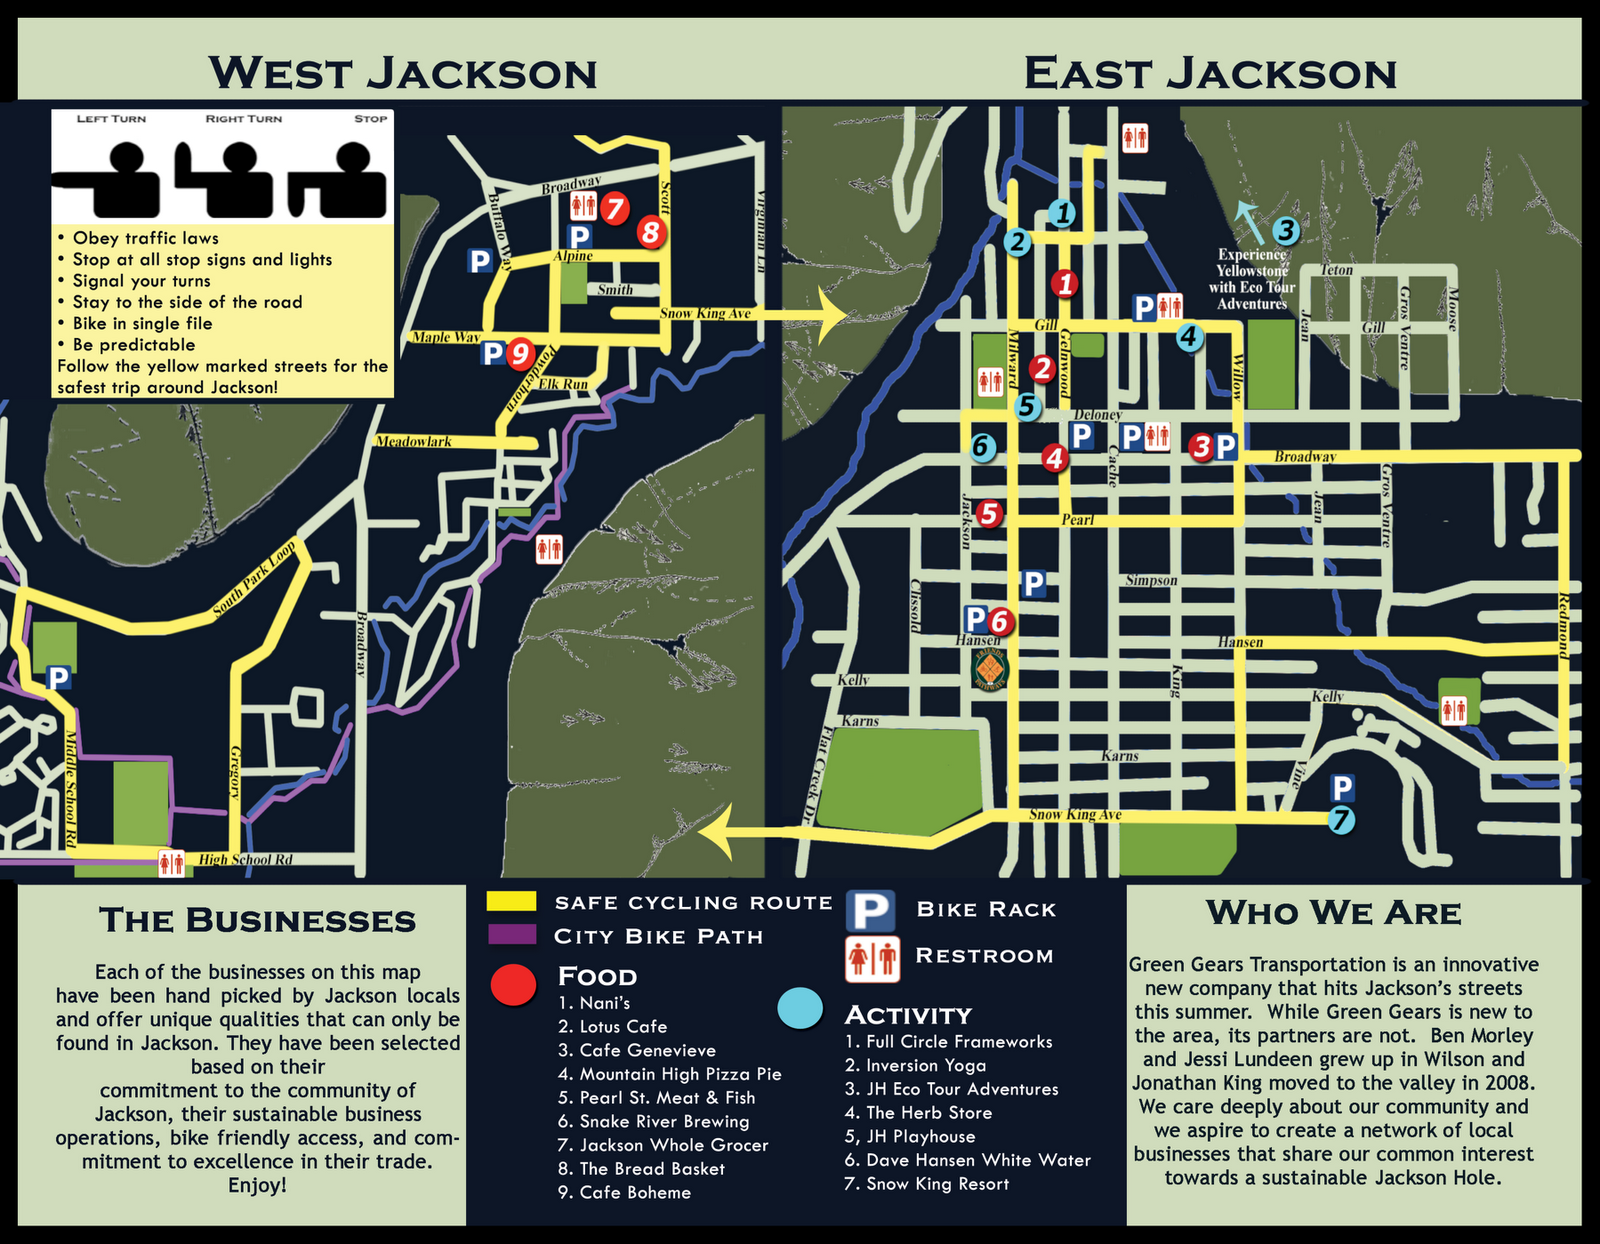 if you ve ever been to jackson hole in the summer you know how small the town is and how choked with traffic we become during the summer tourist season